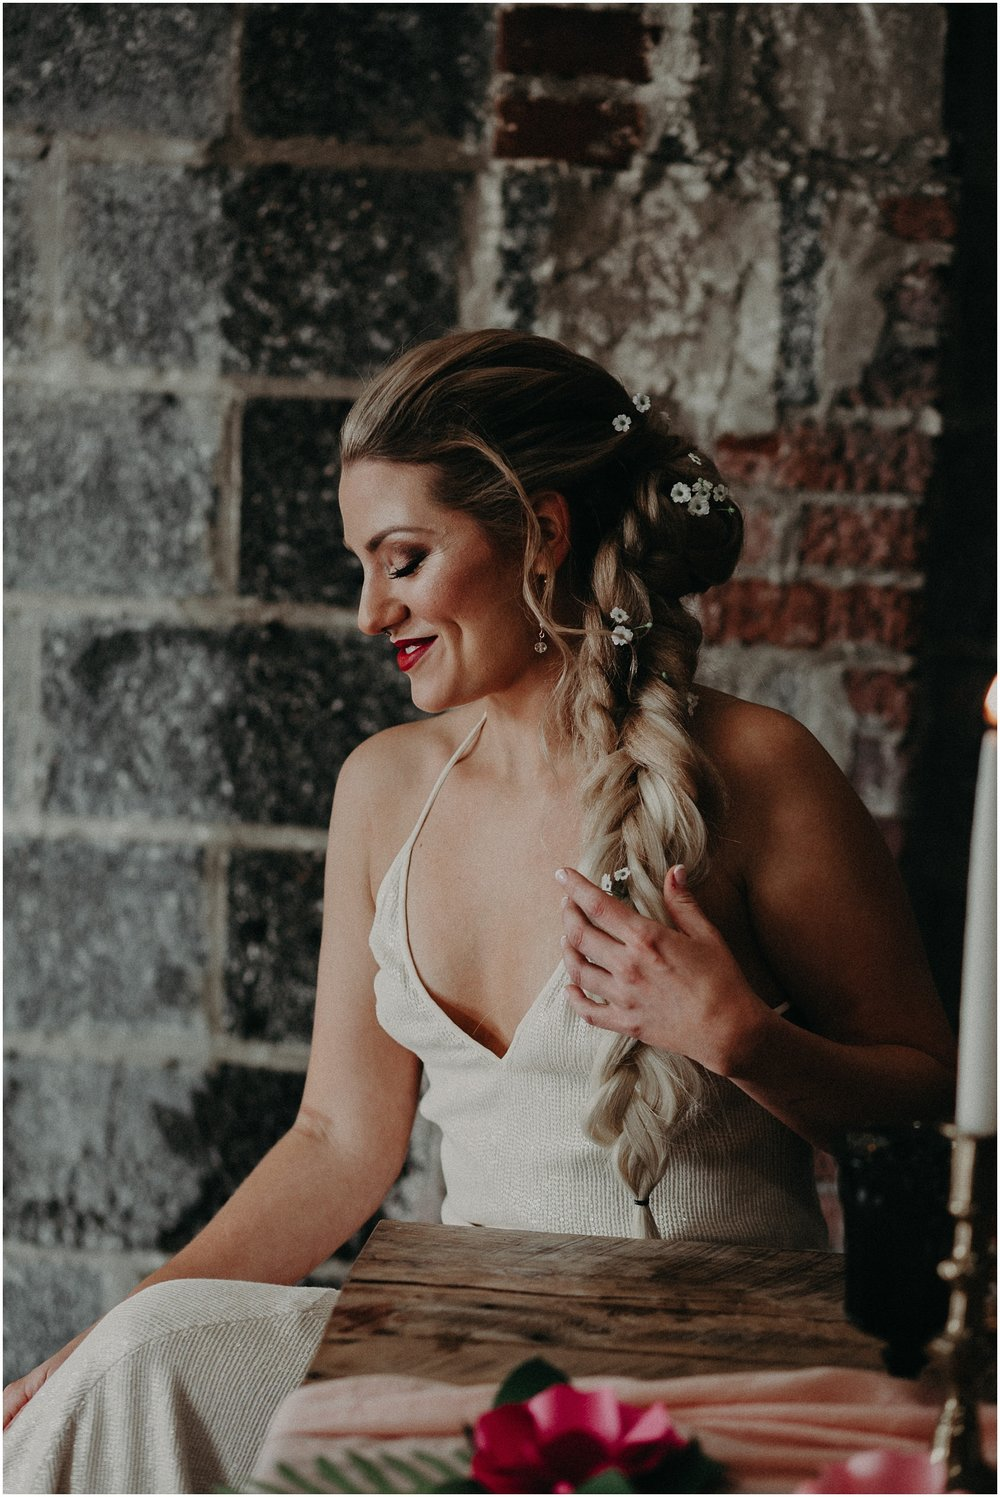 styled shoot-bridal portraits-portraits-bride-rock and roll-industrial-urban-wedding-inspiration-nj-new jersey-nyc-new york city-art-diy wedding_0040.jpg